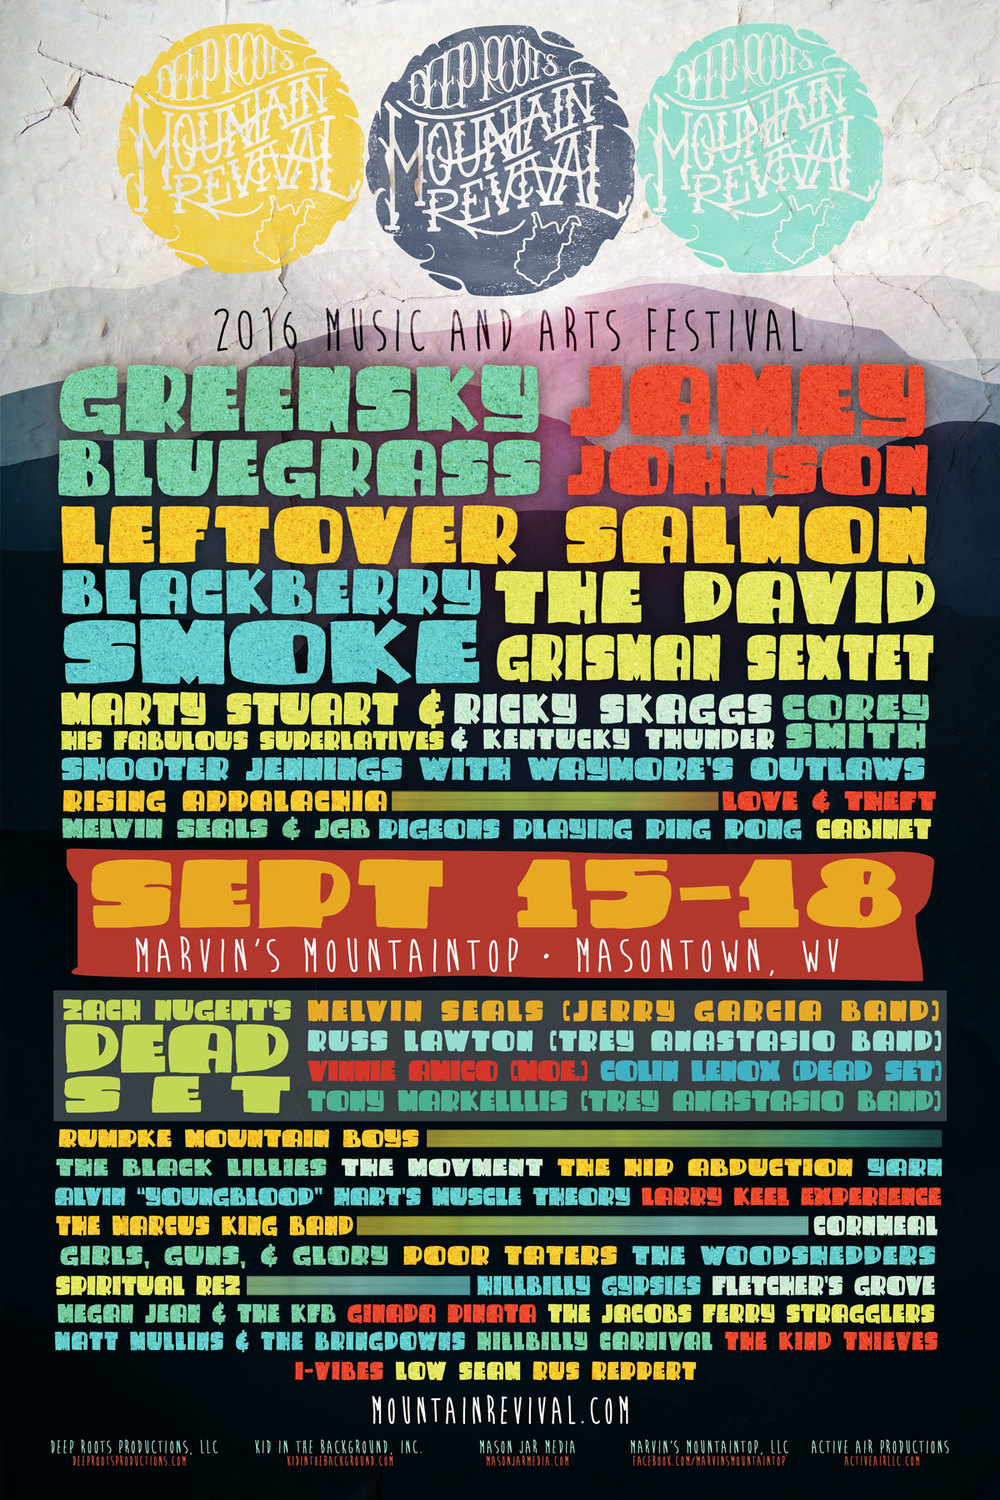 "WHAT:  DEEP ROOTS MOUNTAIN REVIVAL FESTIVAL    WHEN:  THURSDAY, SEPTEMBER 15 – SUNDAY, SEPTEMBER 18, 2016    WHERE:  MARVIN'S MOUNTAINTOP IN MASONTOWN, WV    TICKETS ON-SALE:   TUESDAY, MAY 3RD at 10 AM ET    TICKETS ADVANCE:  $130 for 3-DAY GA // $570 for 3-Day VIP    TICKETS AVAILABLE AT:    mountainrevival.com      FESTIVAL WEBSITE:    mountainrevival.com       Deep Roots Mountain Revival Full Lineup:    *JUST ADDED  Greensky Bluegrass Jamey Johnson * Leftover Salmon Blackberry Smoke * The David Grisman Sextet Ricky Skaggs and Kentucky Thunder Corey Smith * Love and Theft * Marty Stuart & His Fabulous Superlatives Shooter Jennings with Waymore's Outlaws Cabinet Melvin Seals & JGB Rising Appalachia * Pigeons Playing Ping Pong Rumpke Mountain Boys Zach Nugent's Dead Set * The Black Lillies Yarn The Movement Alvin ""Youngblood"" Hart's Muscle Theory The Hip Abduction The Marcus King Band * Larry Keel Experience Cornmeal Girls, Guns & Glory Spiritual Rez The Woodshedders Megan Jean & The KFB Hillbilly Gypsies Fletcher's Grove The Jacobs Ferry Stragglers Poor Taters Ginada Pinata * Matt Mullins & The Bringdowns Hillbilly Carnival I-Vibes Low Seam The Kind Thieves Rus Reppert"